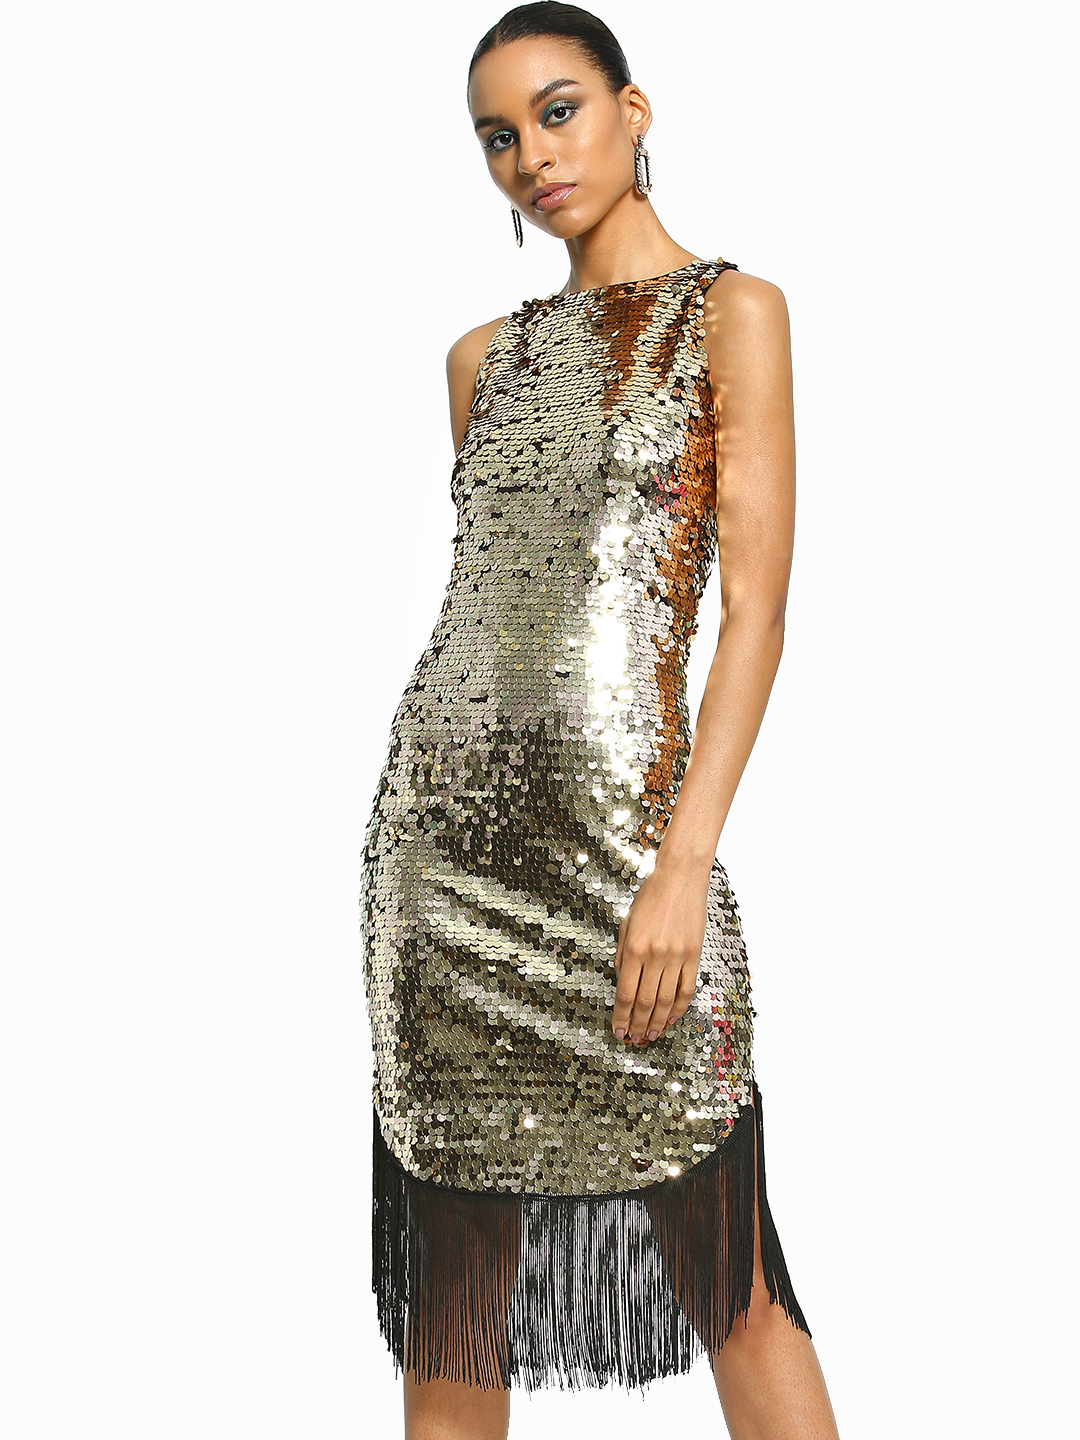 Realty, Lajoly & Co Gold Sequinned Fringe Hem Midi Dress 1